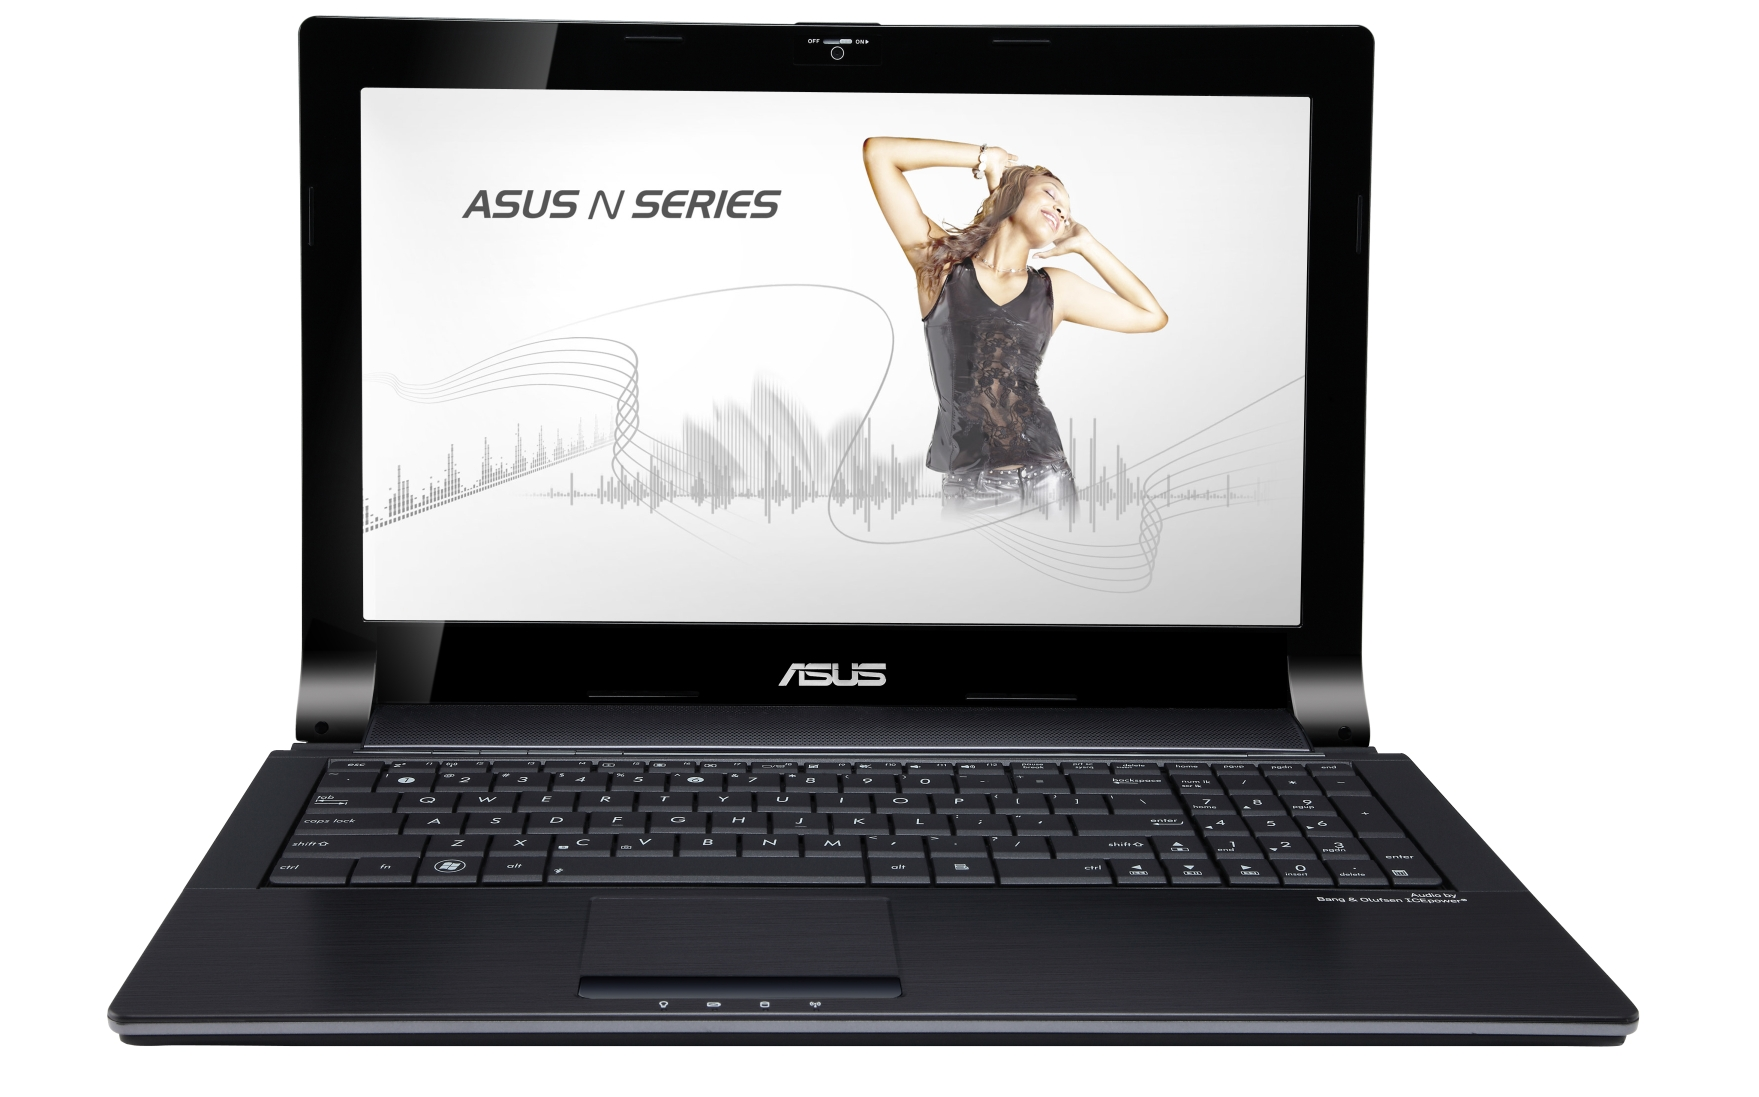 Asus N53SV - Multimedia powered by Sandy